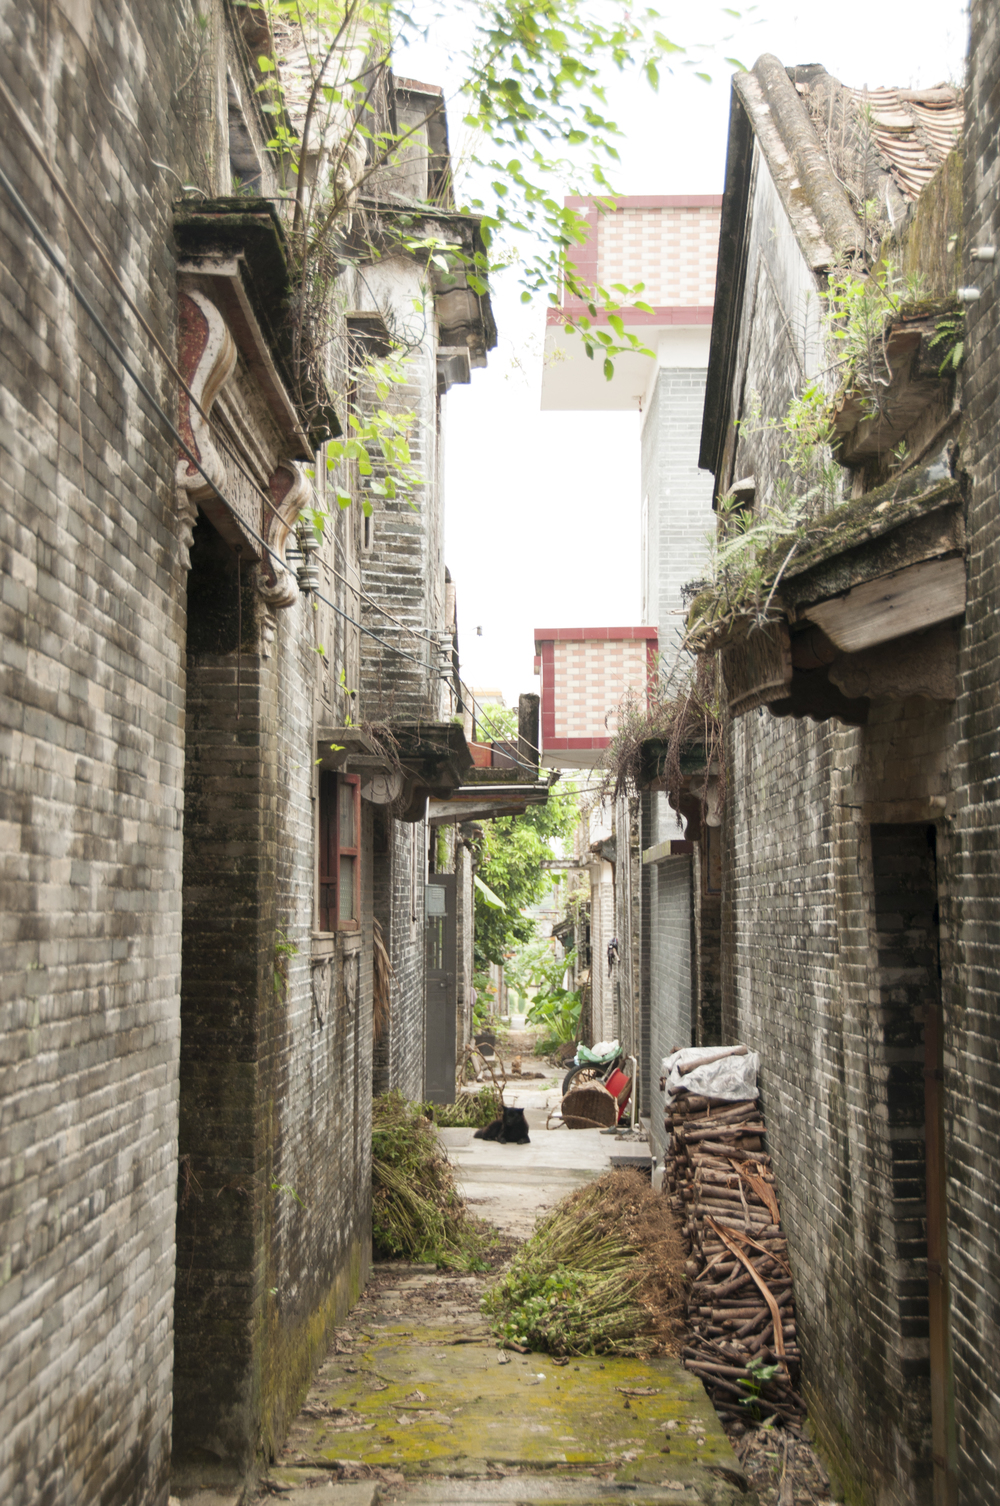 A deserted alleyway in Bok Saa, Toisan